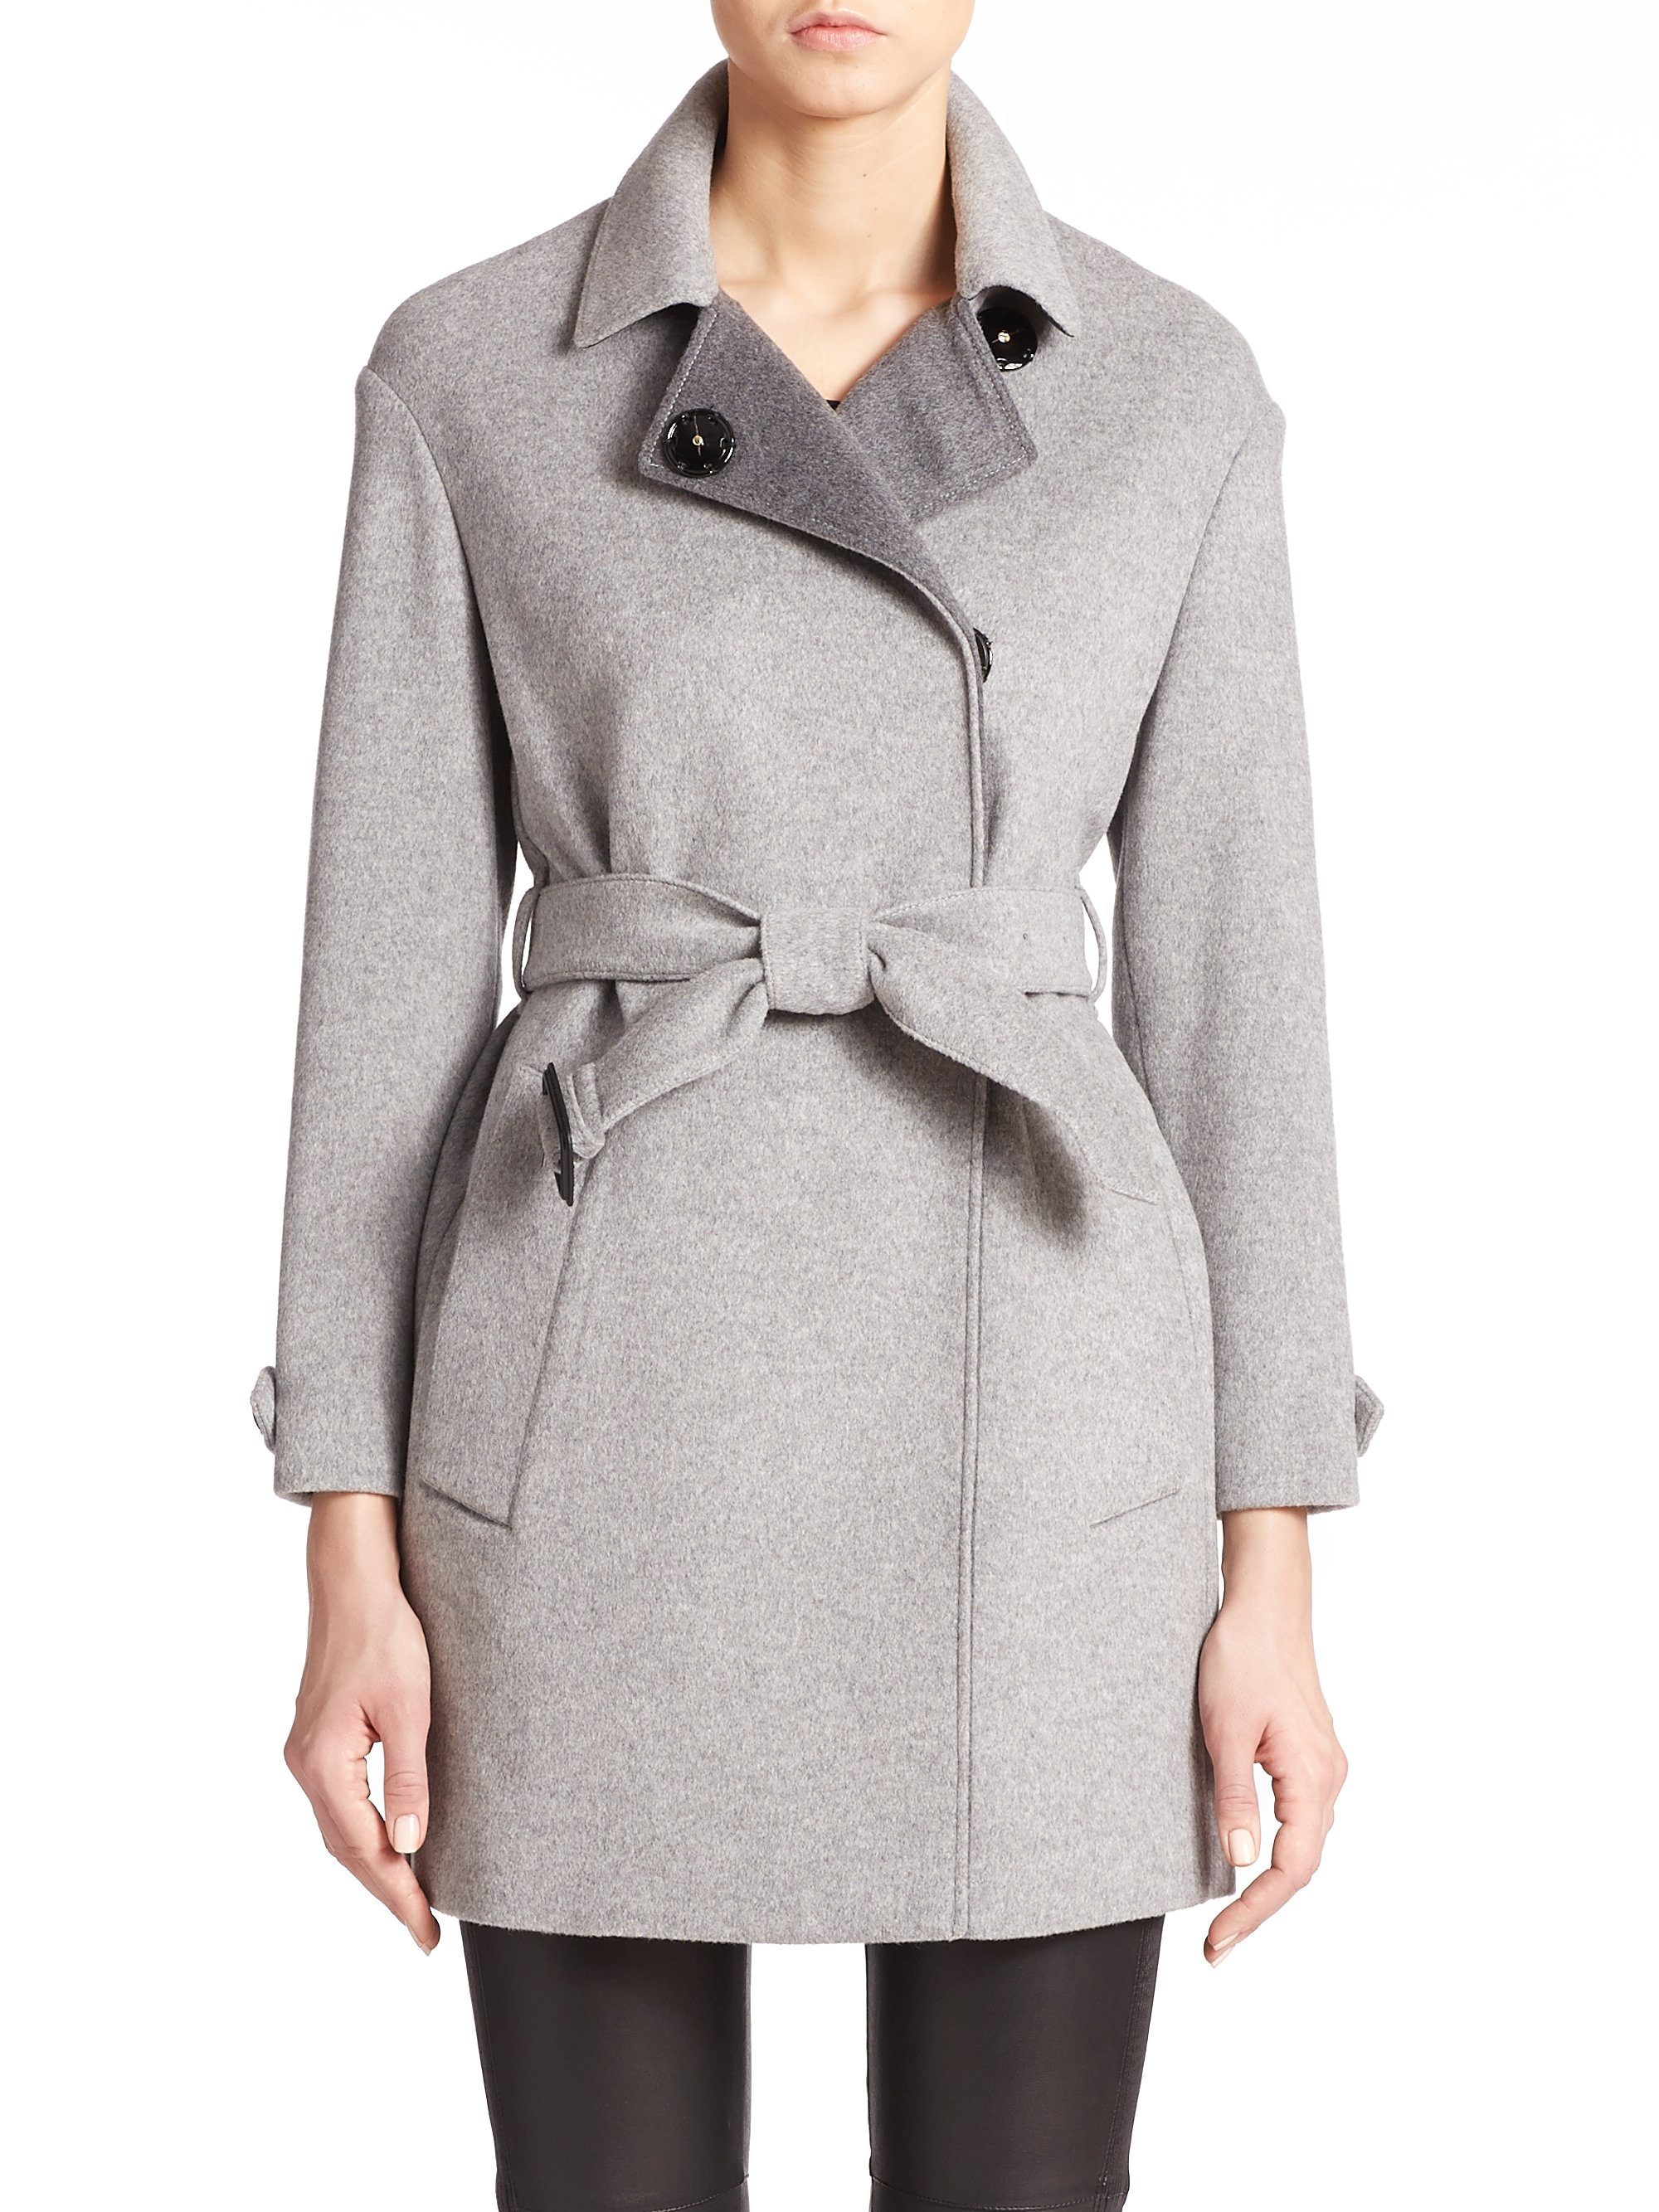 Burberry Hawkwell Wool/cashmere Short Coat in Gray | Lyst